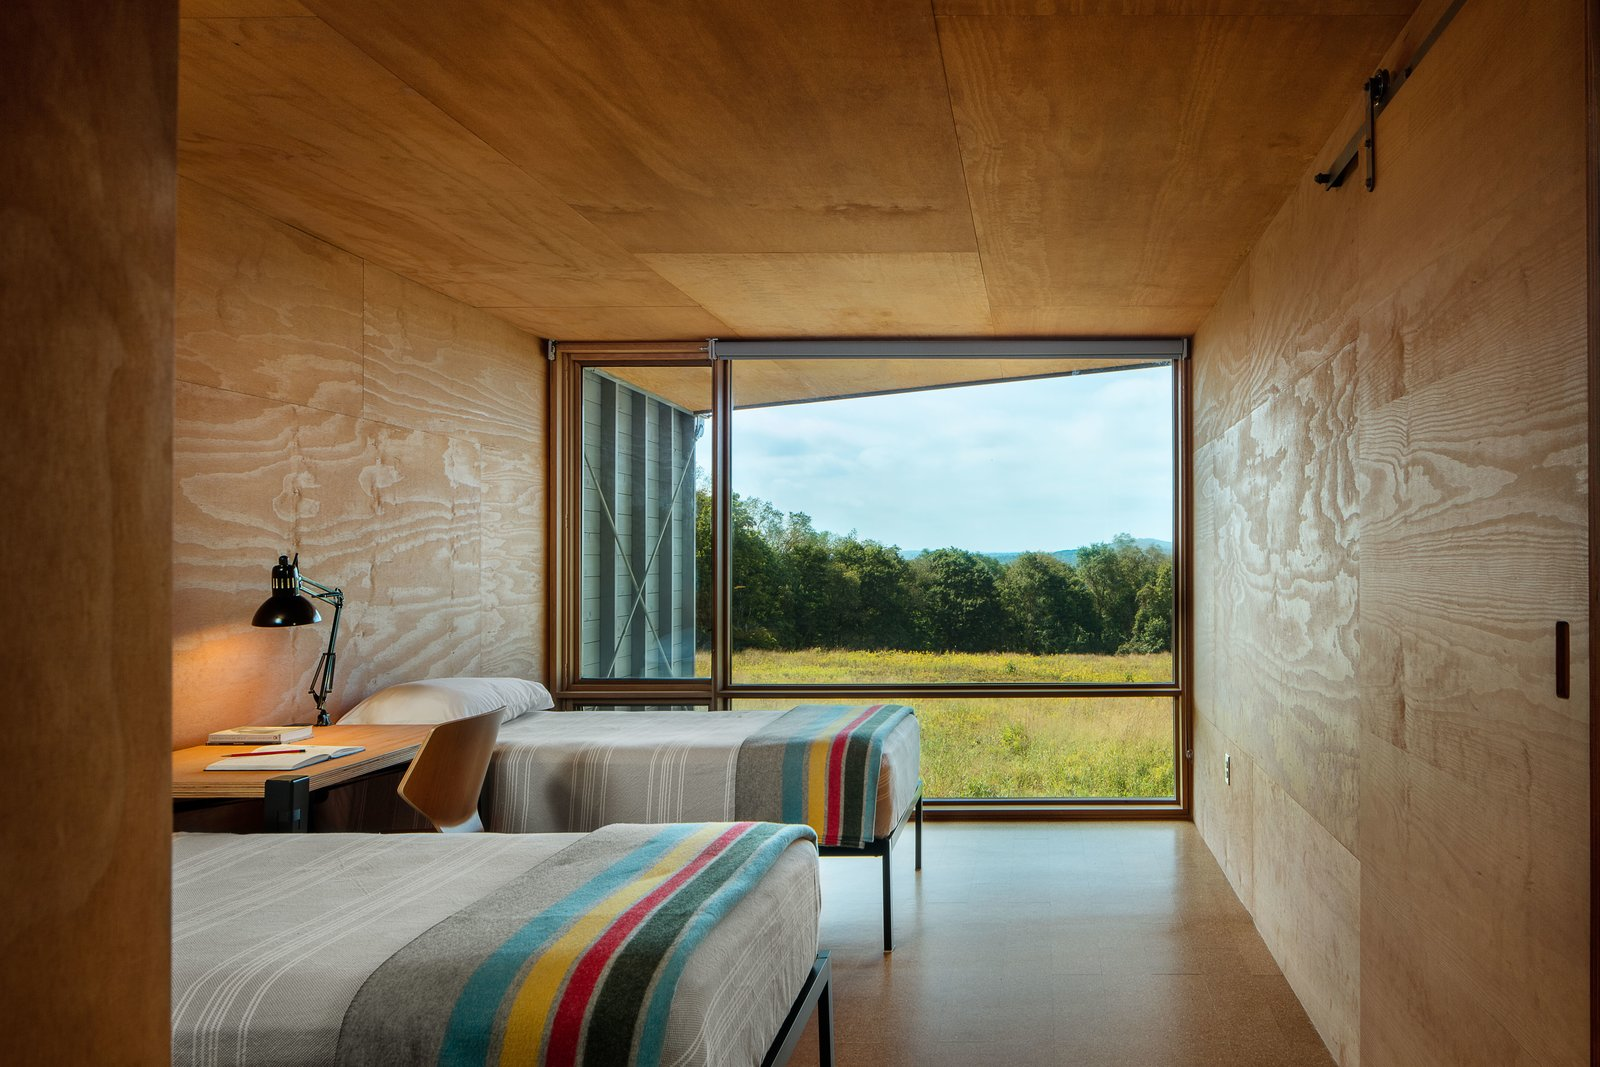 Bedroom, Bed, Lamps, and Chair  Small footprint from High Meadow at Fallingwater